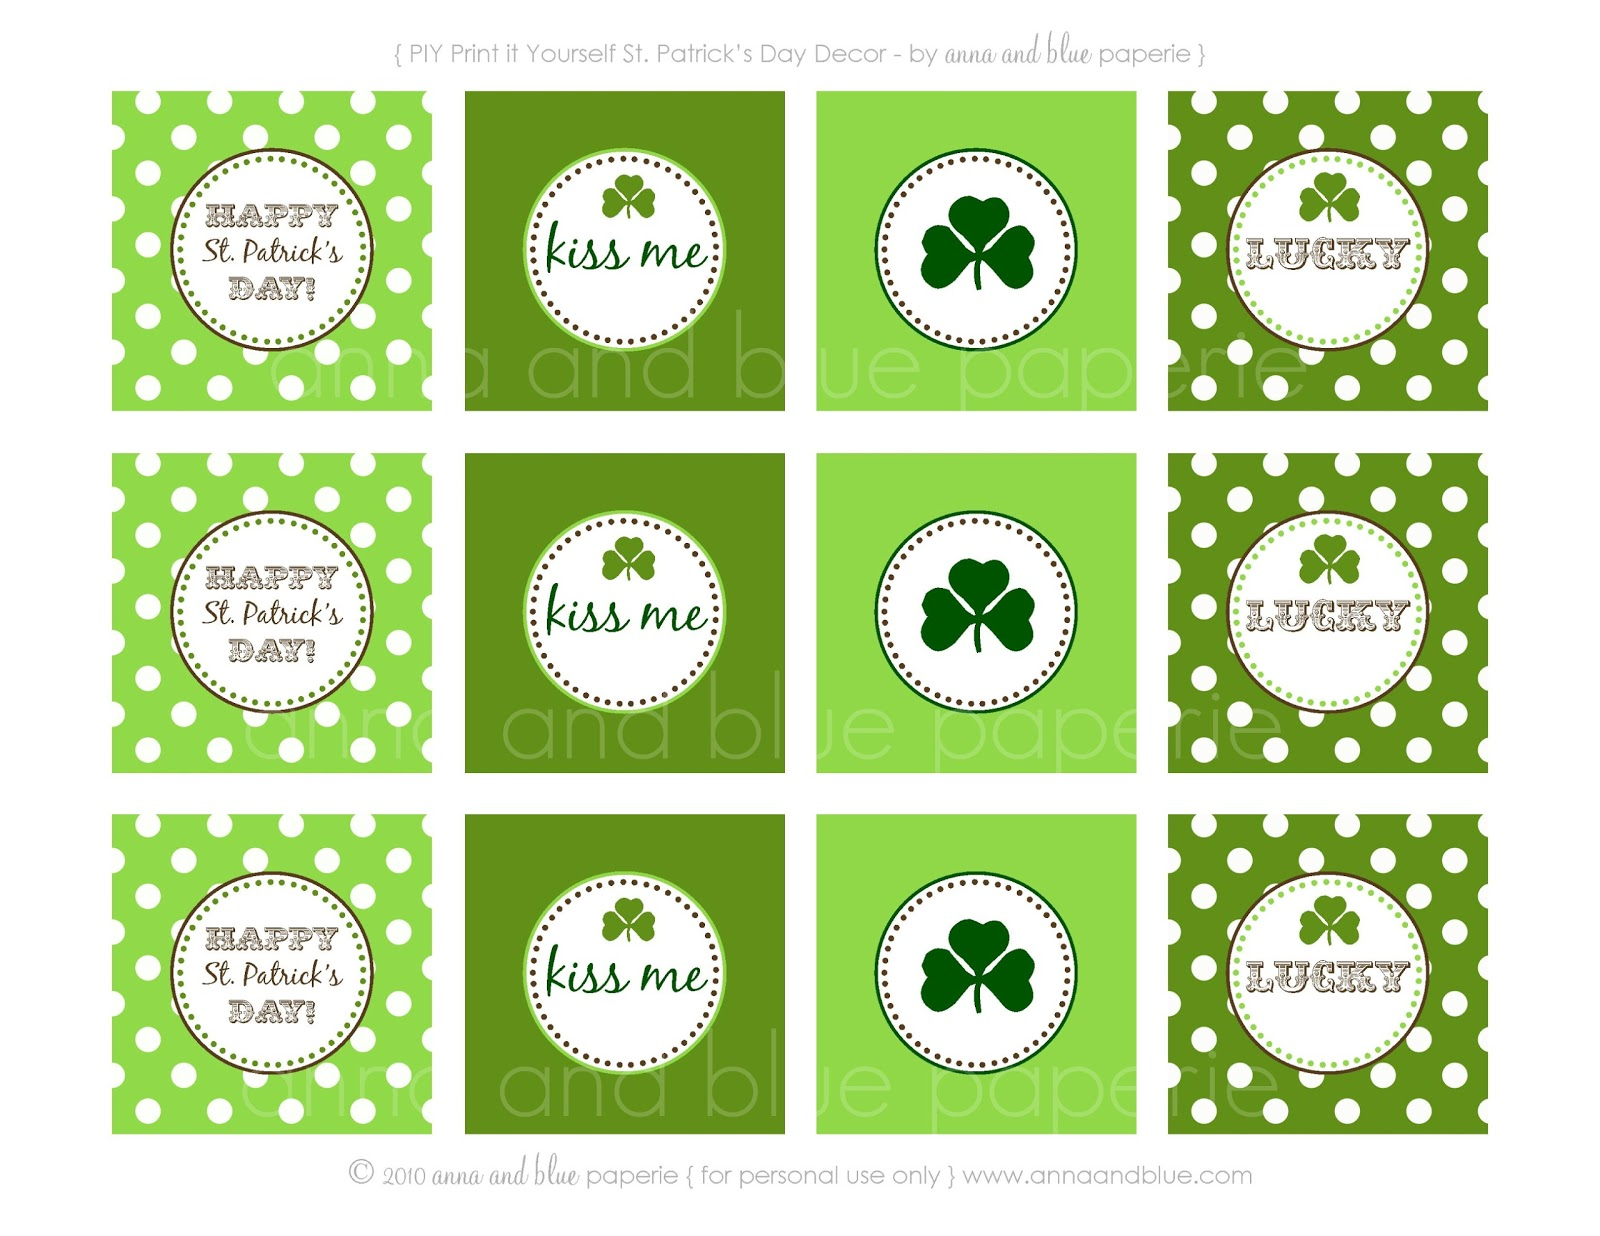 Anna And Blue Paperie Free Printable Happy St Patrick